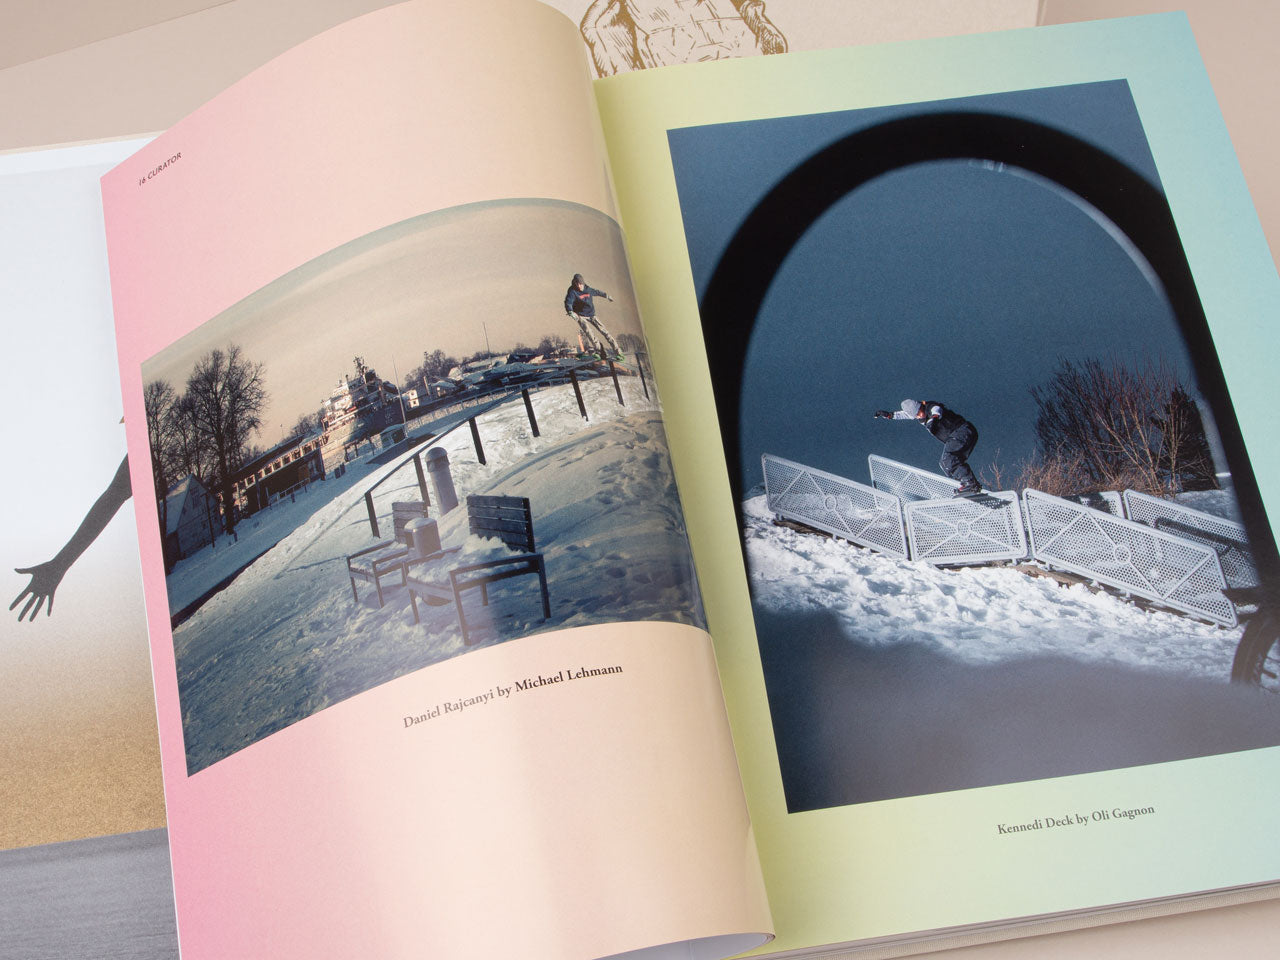 CURATOR VOLUME 3 – CULTURE OF SNOWBOARDING